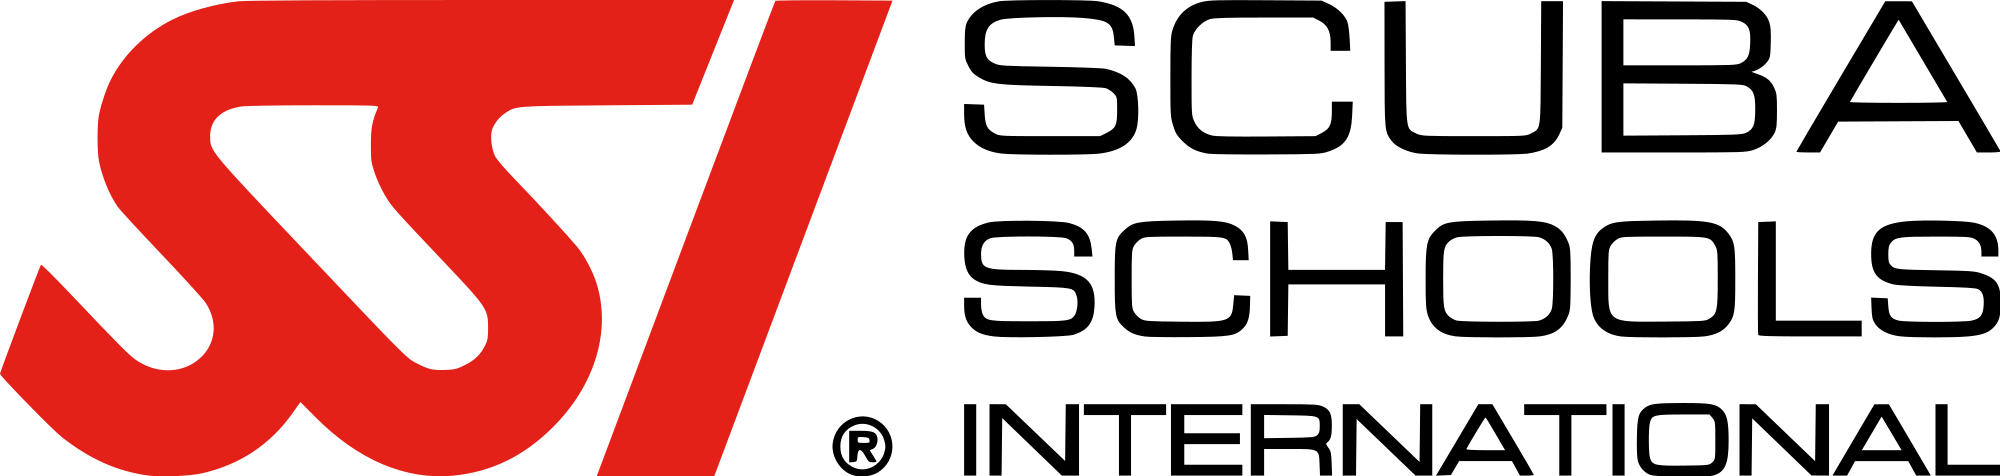 SSI-logo_new.png